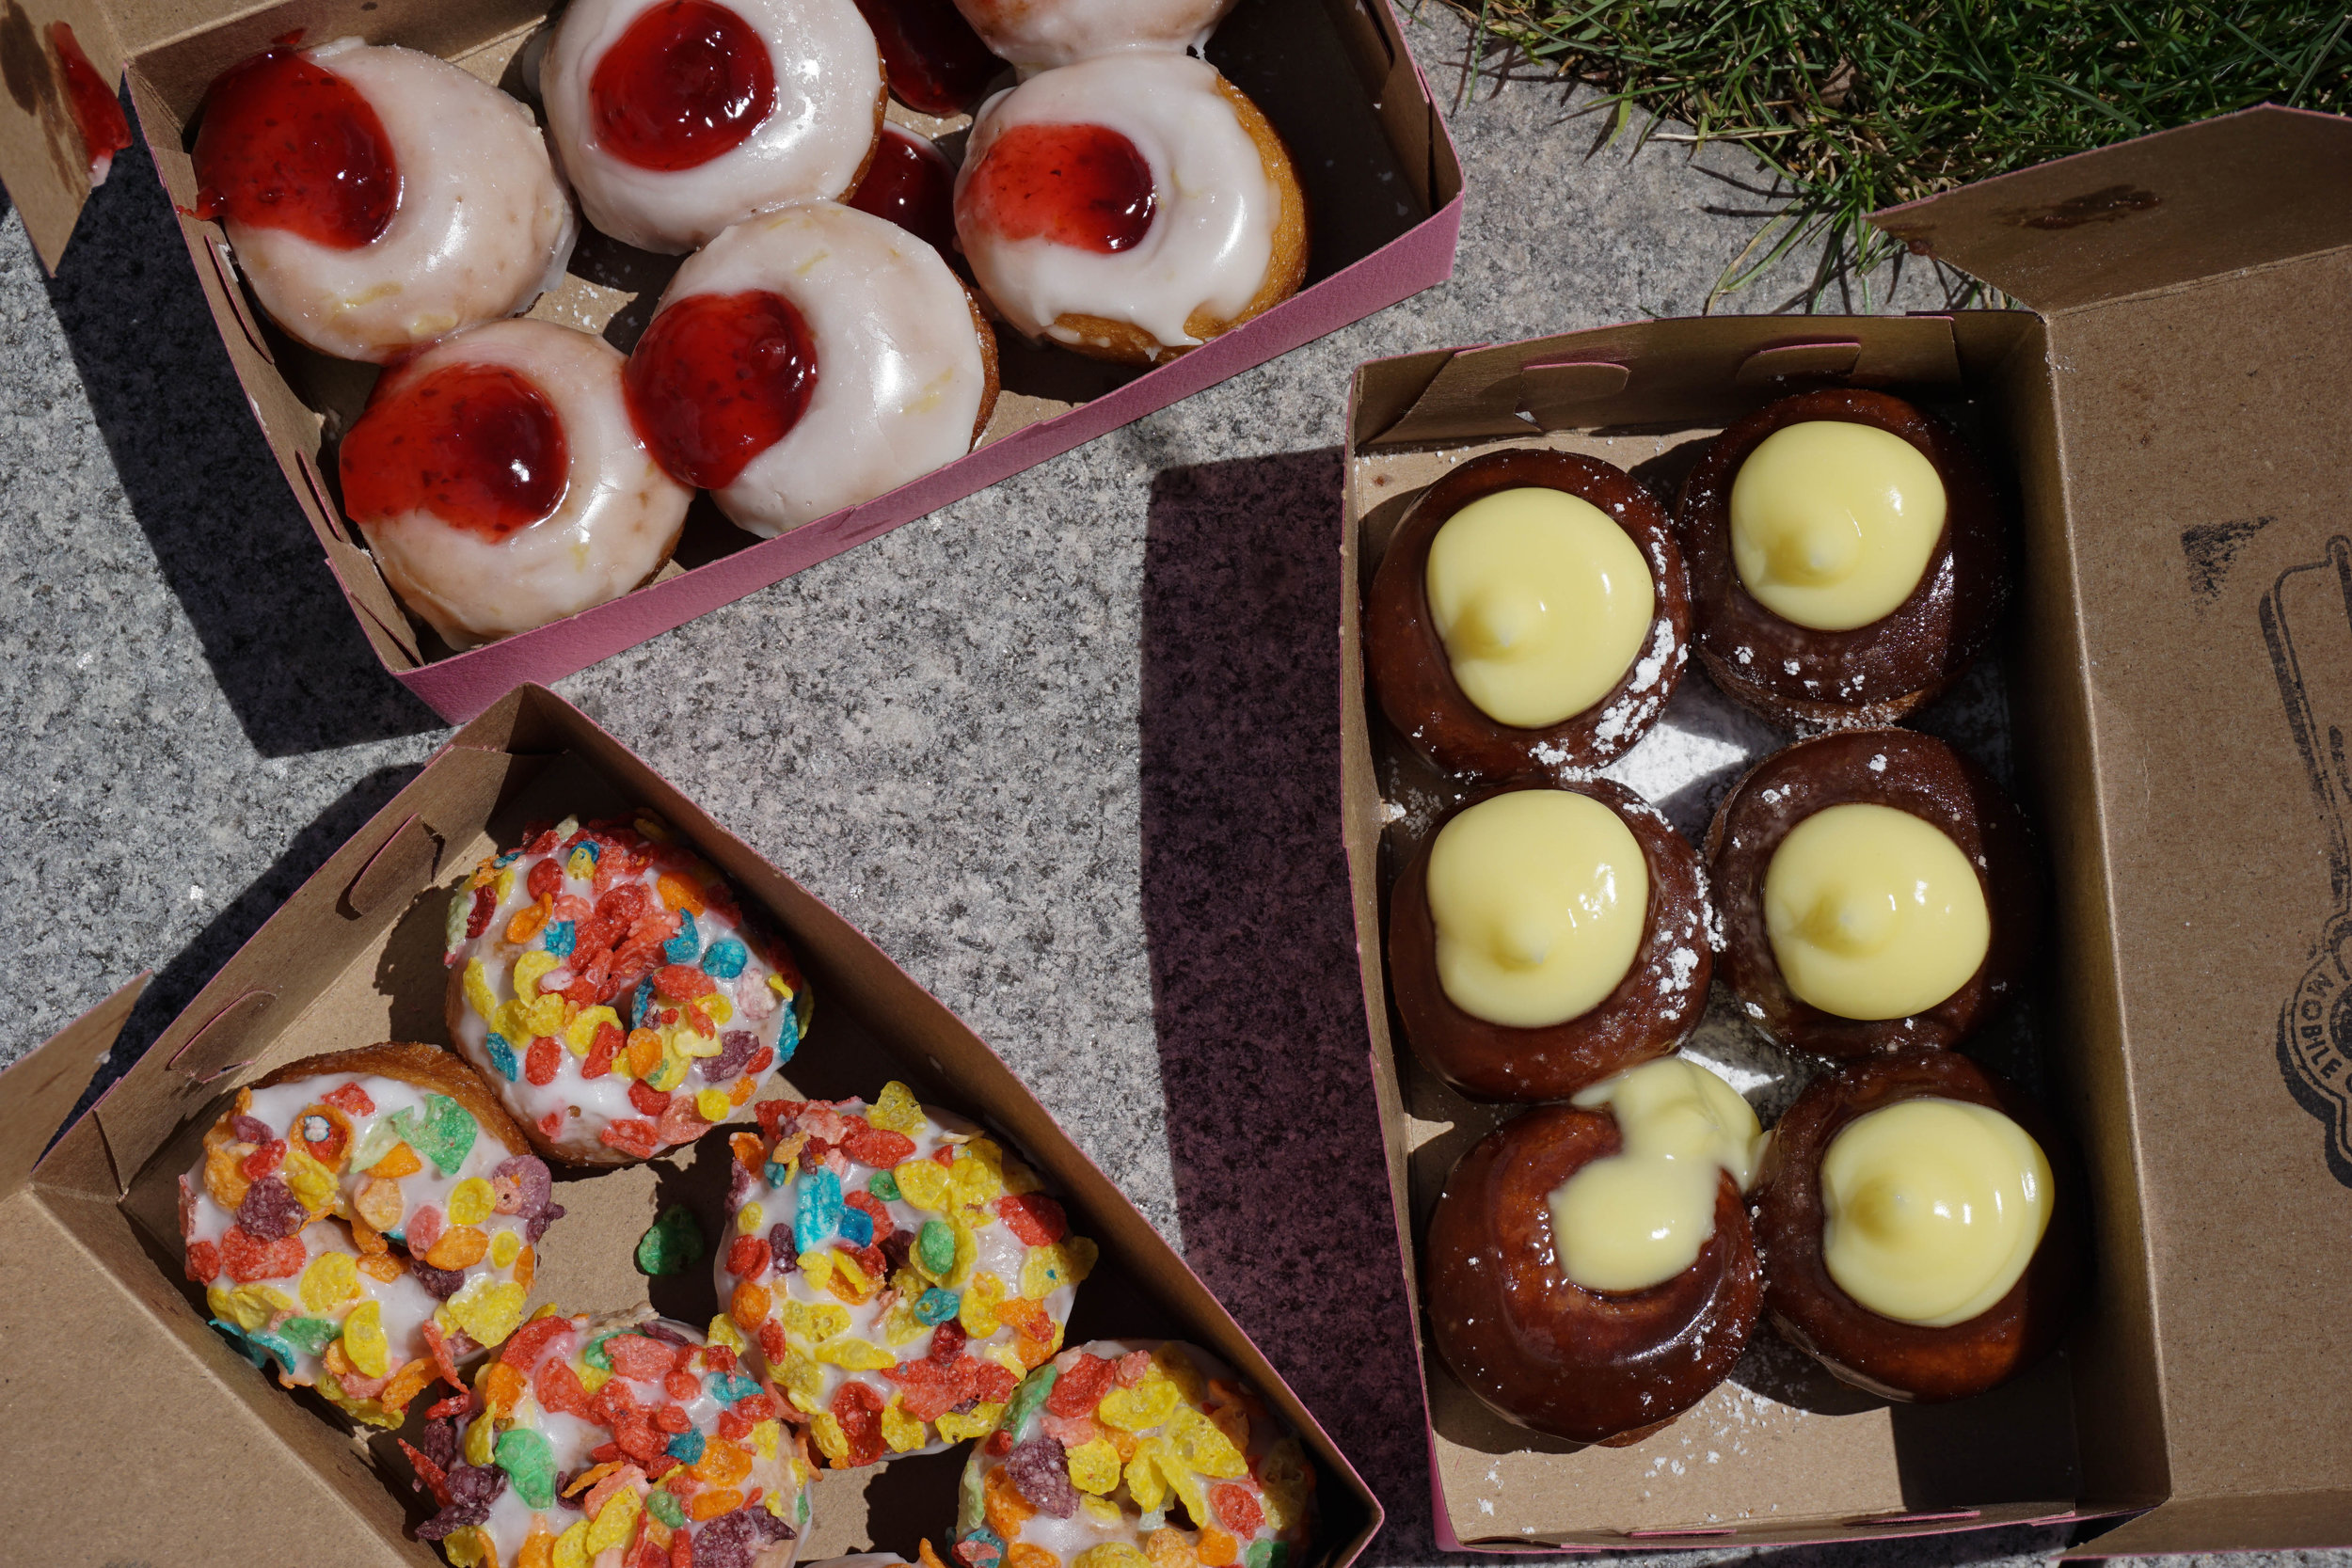 Lemon raspberry zingers, boston cream pies, and Bam Bams (fruity pebble-covered donuts)